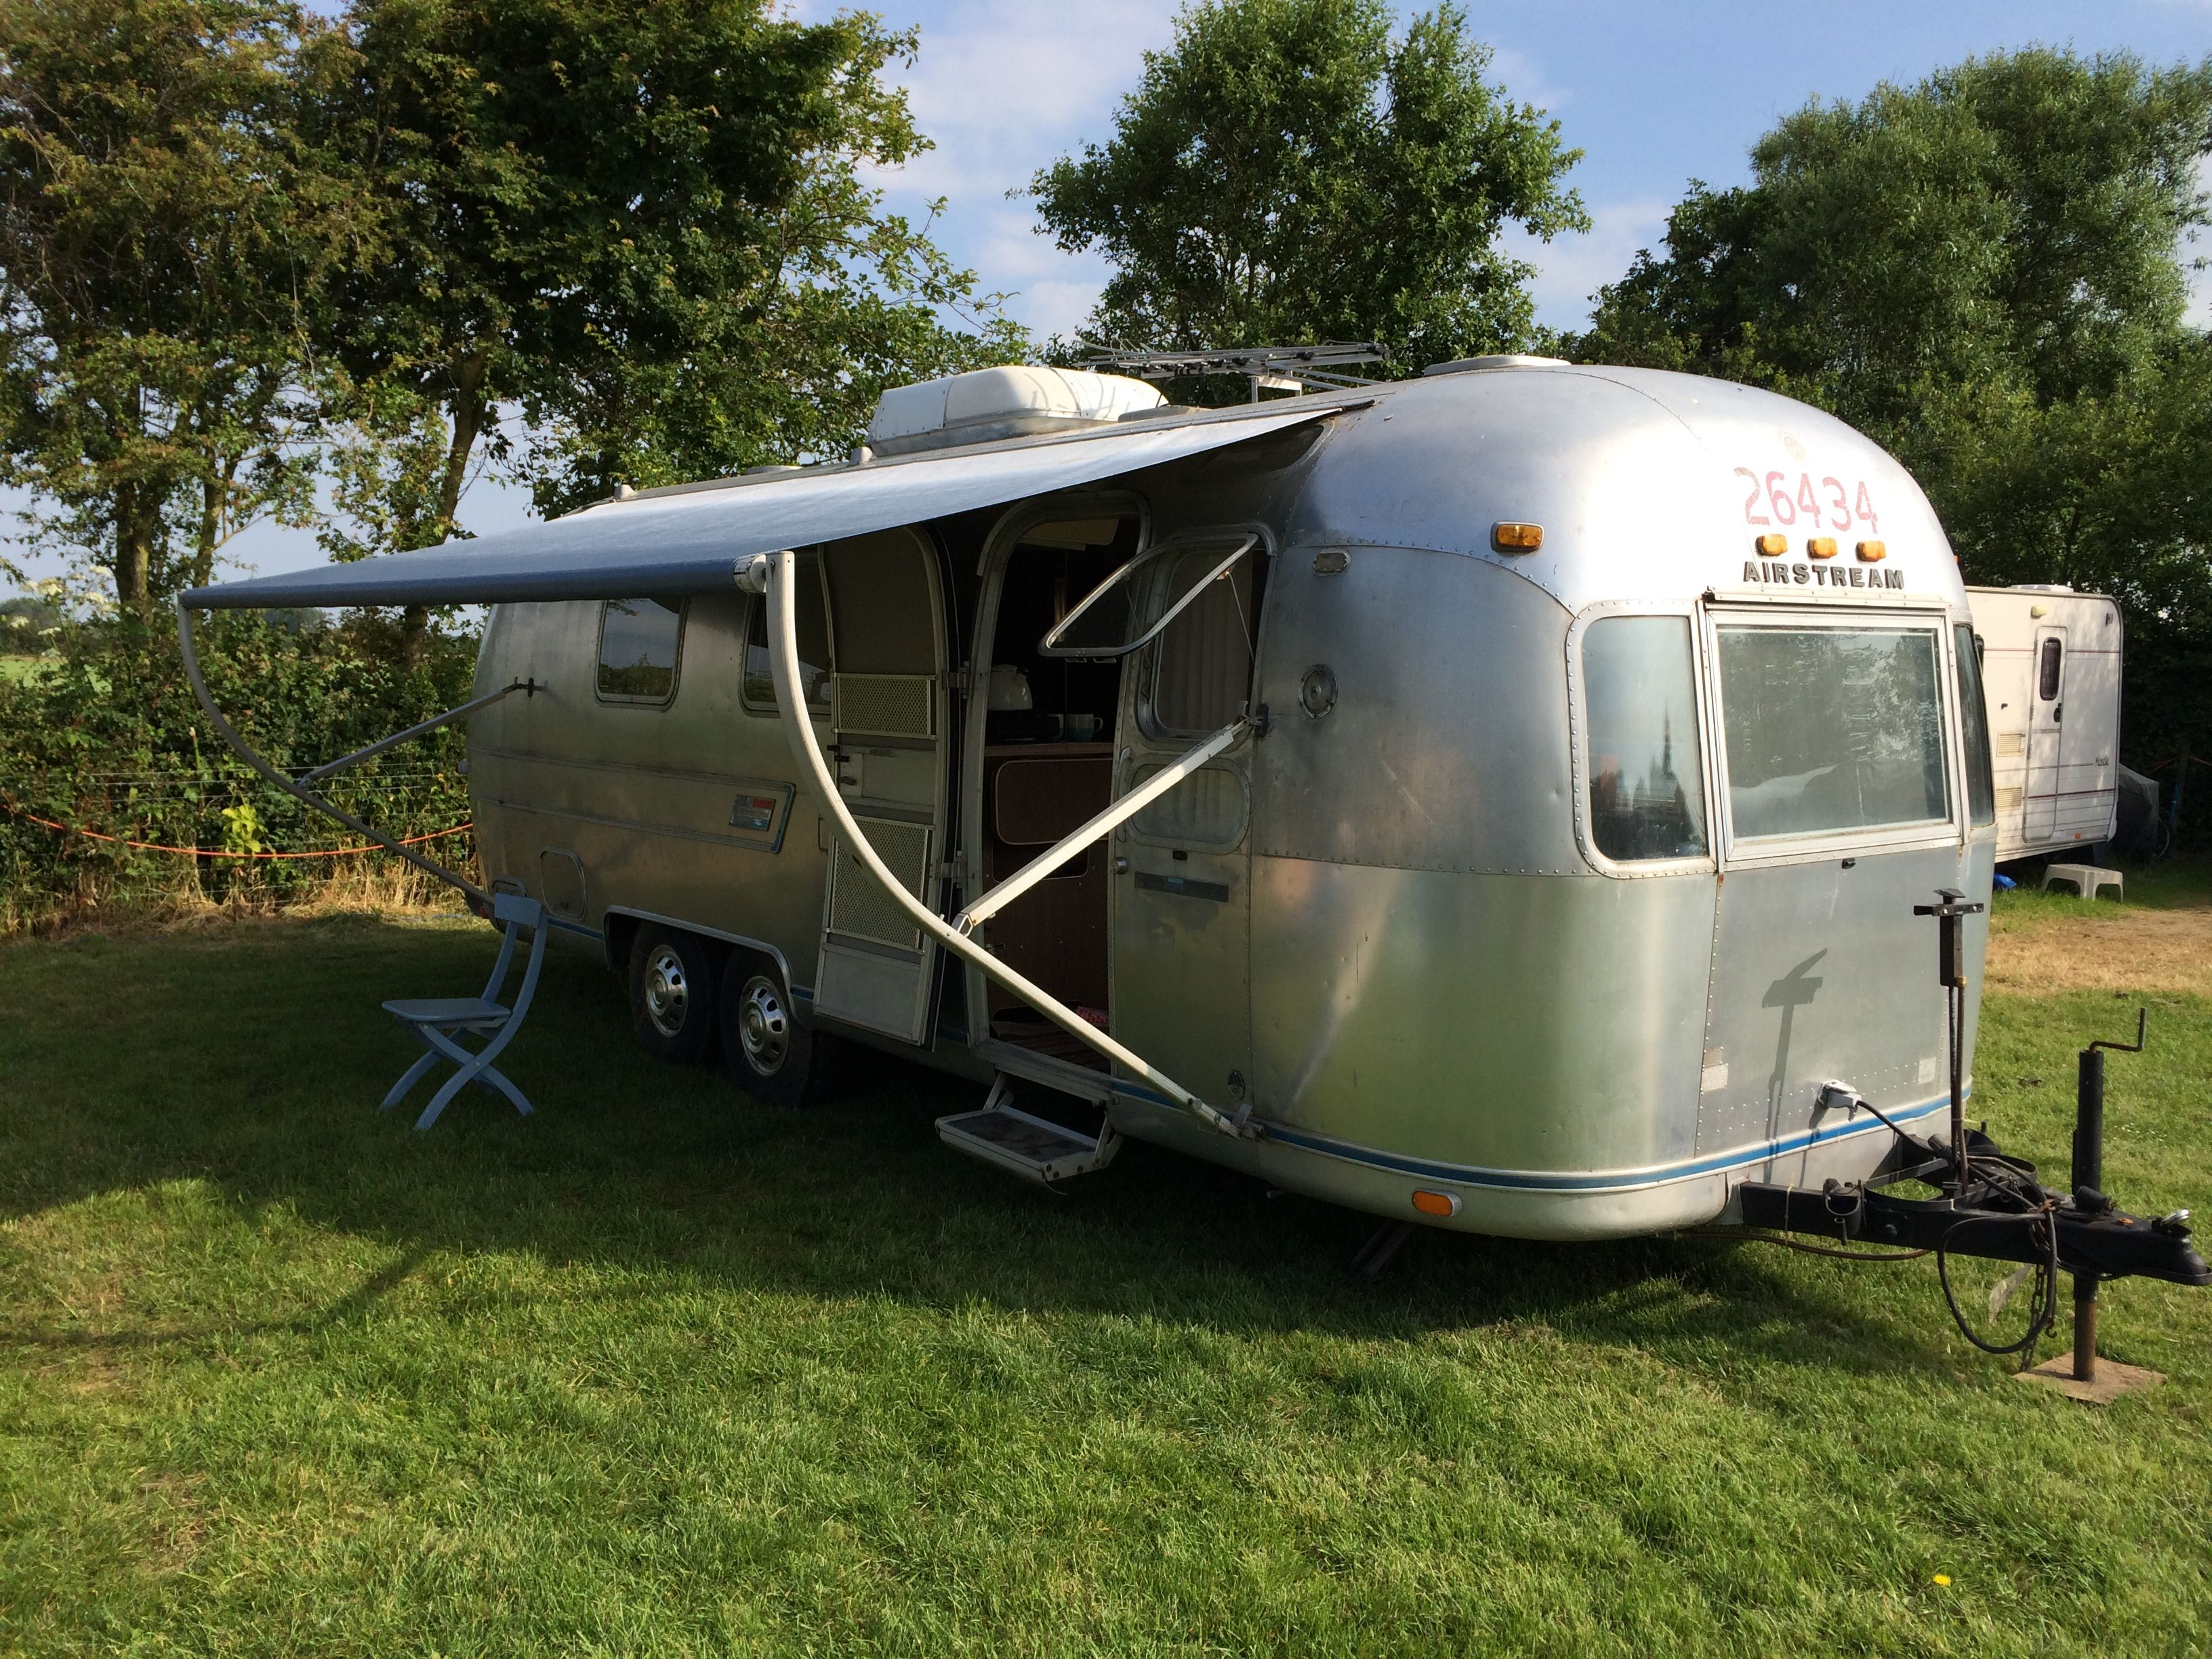 Airstream Overlander With Carefree Awning Recreational Vehicles Carefree Awning Airstream